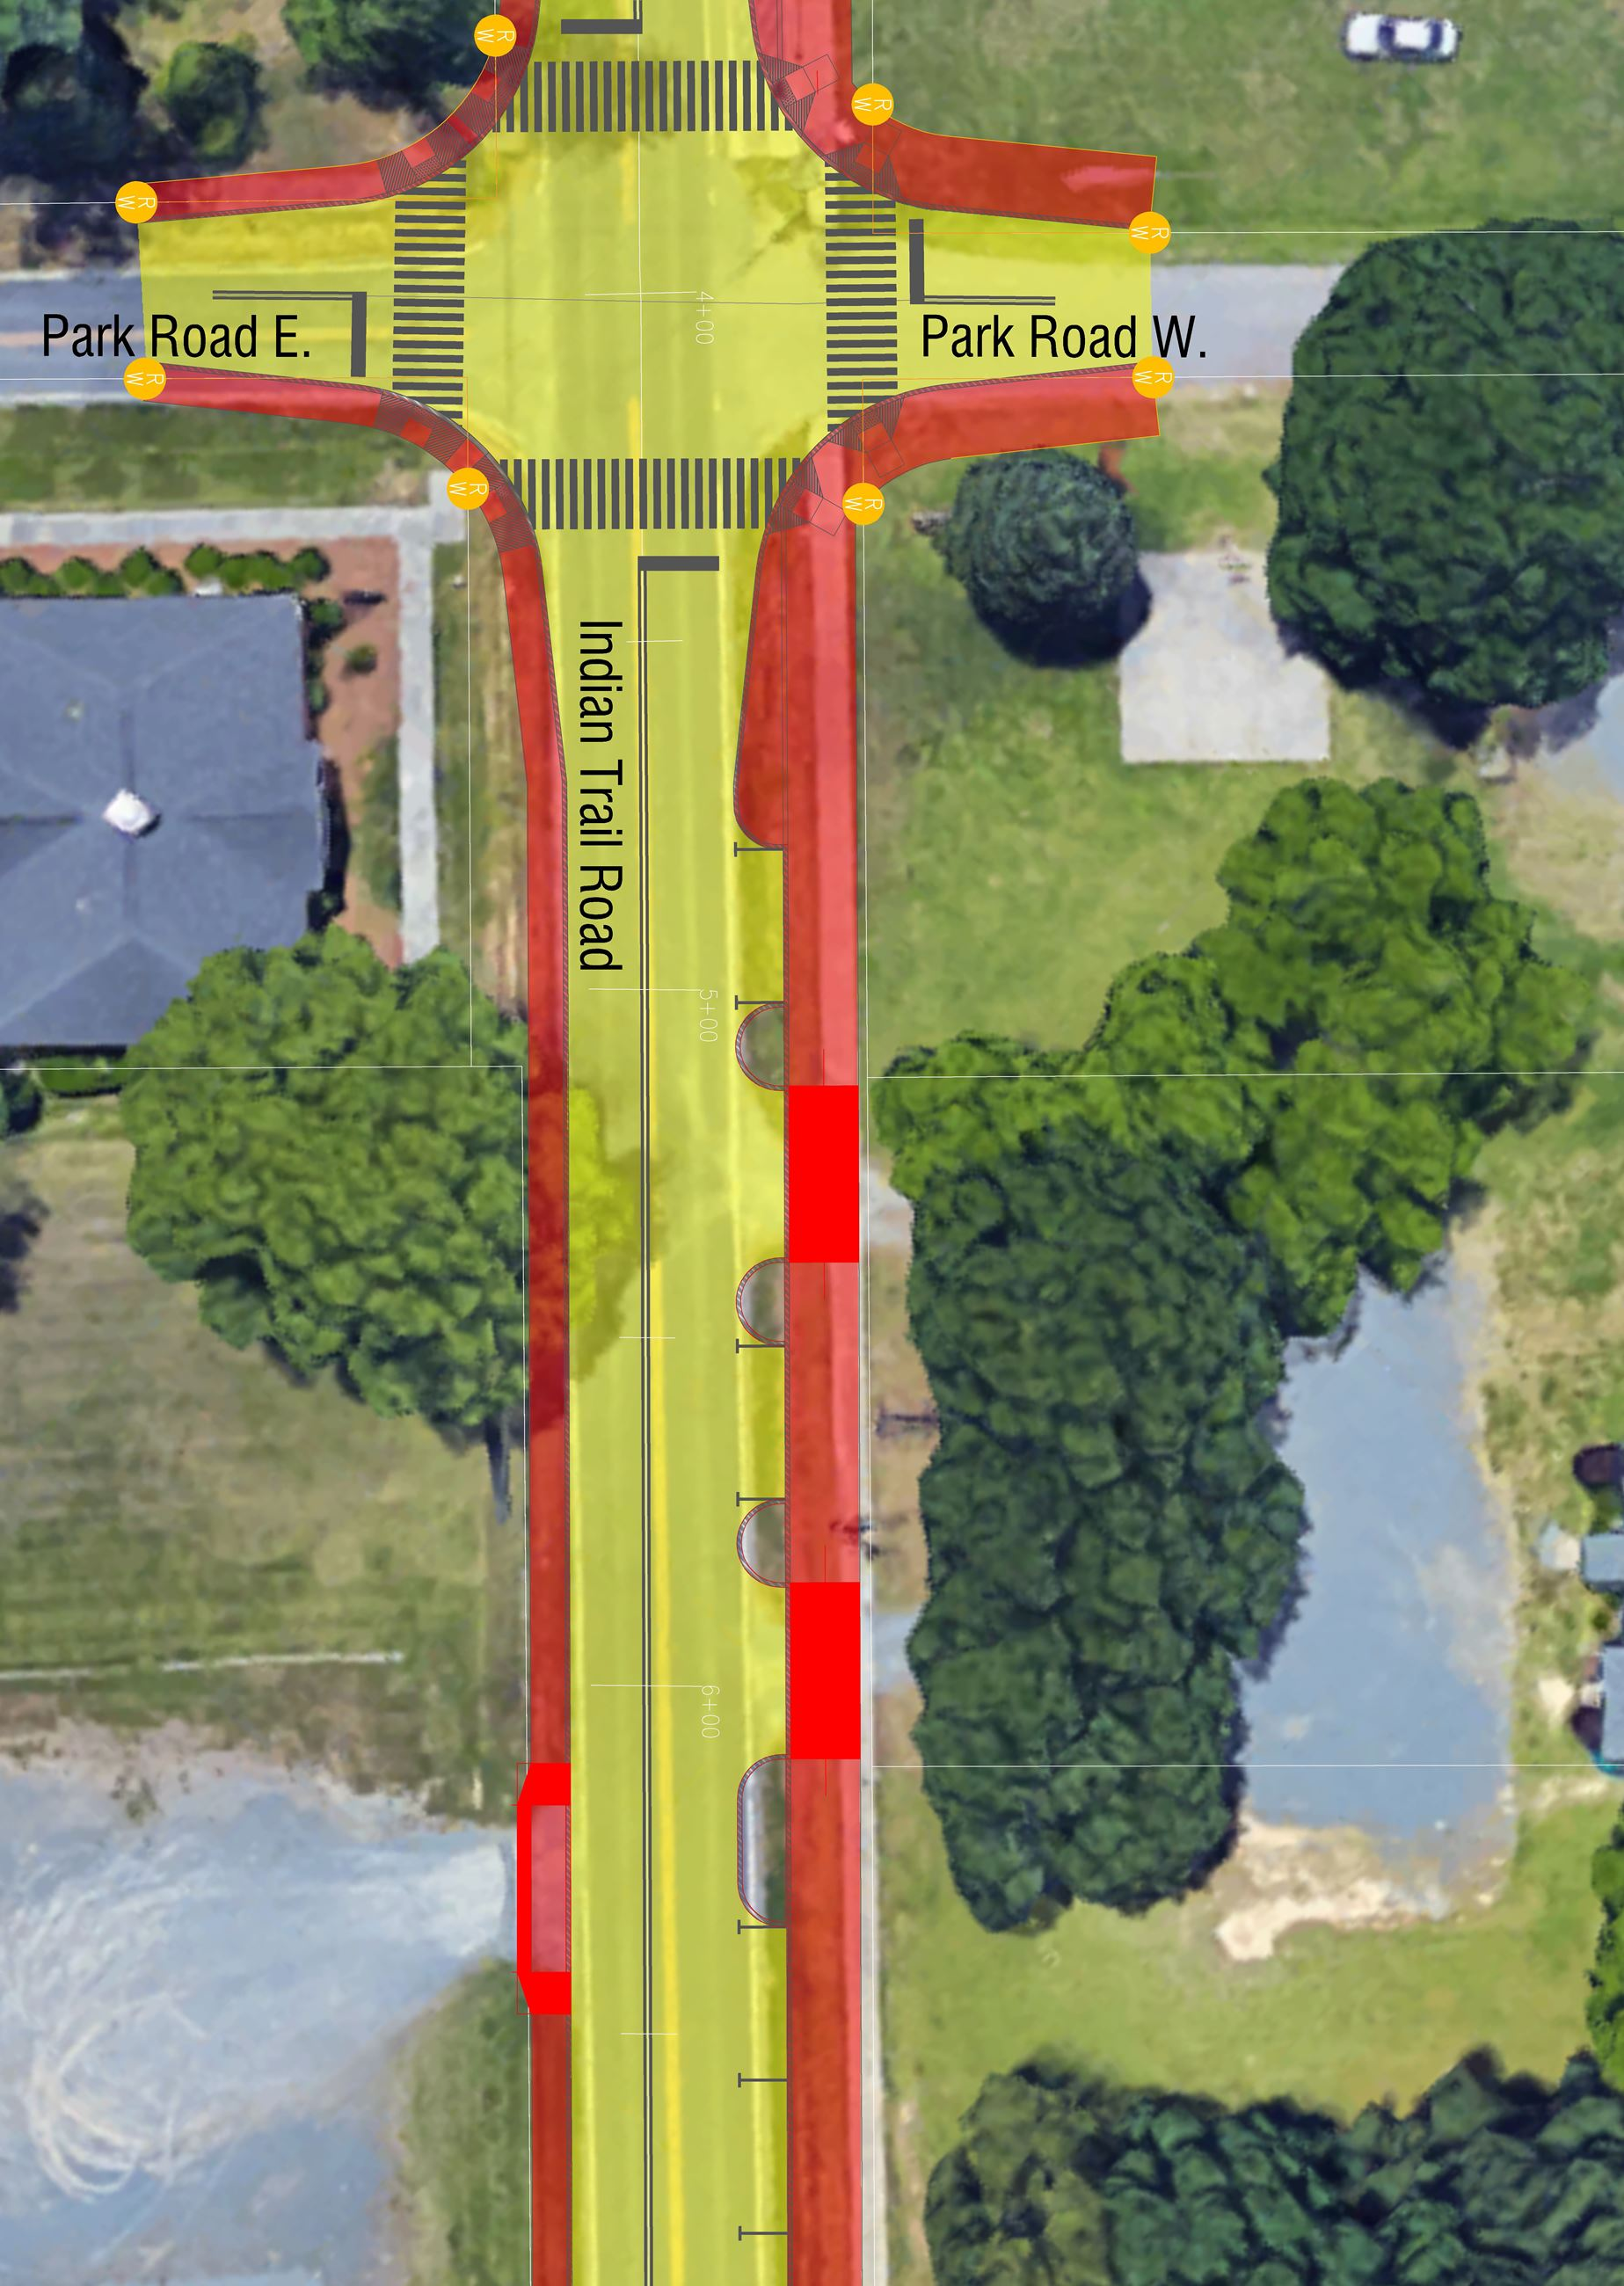 Indian Trail Complete Street rendering image